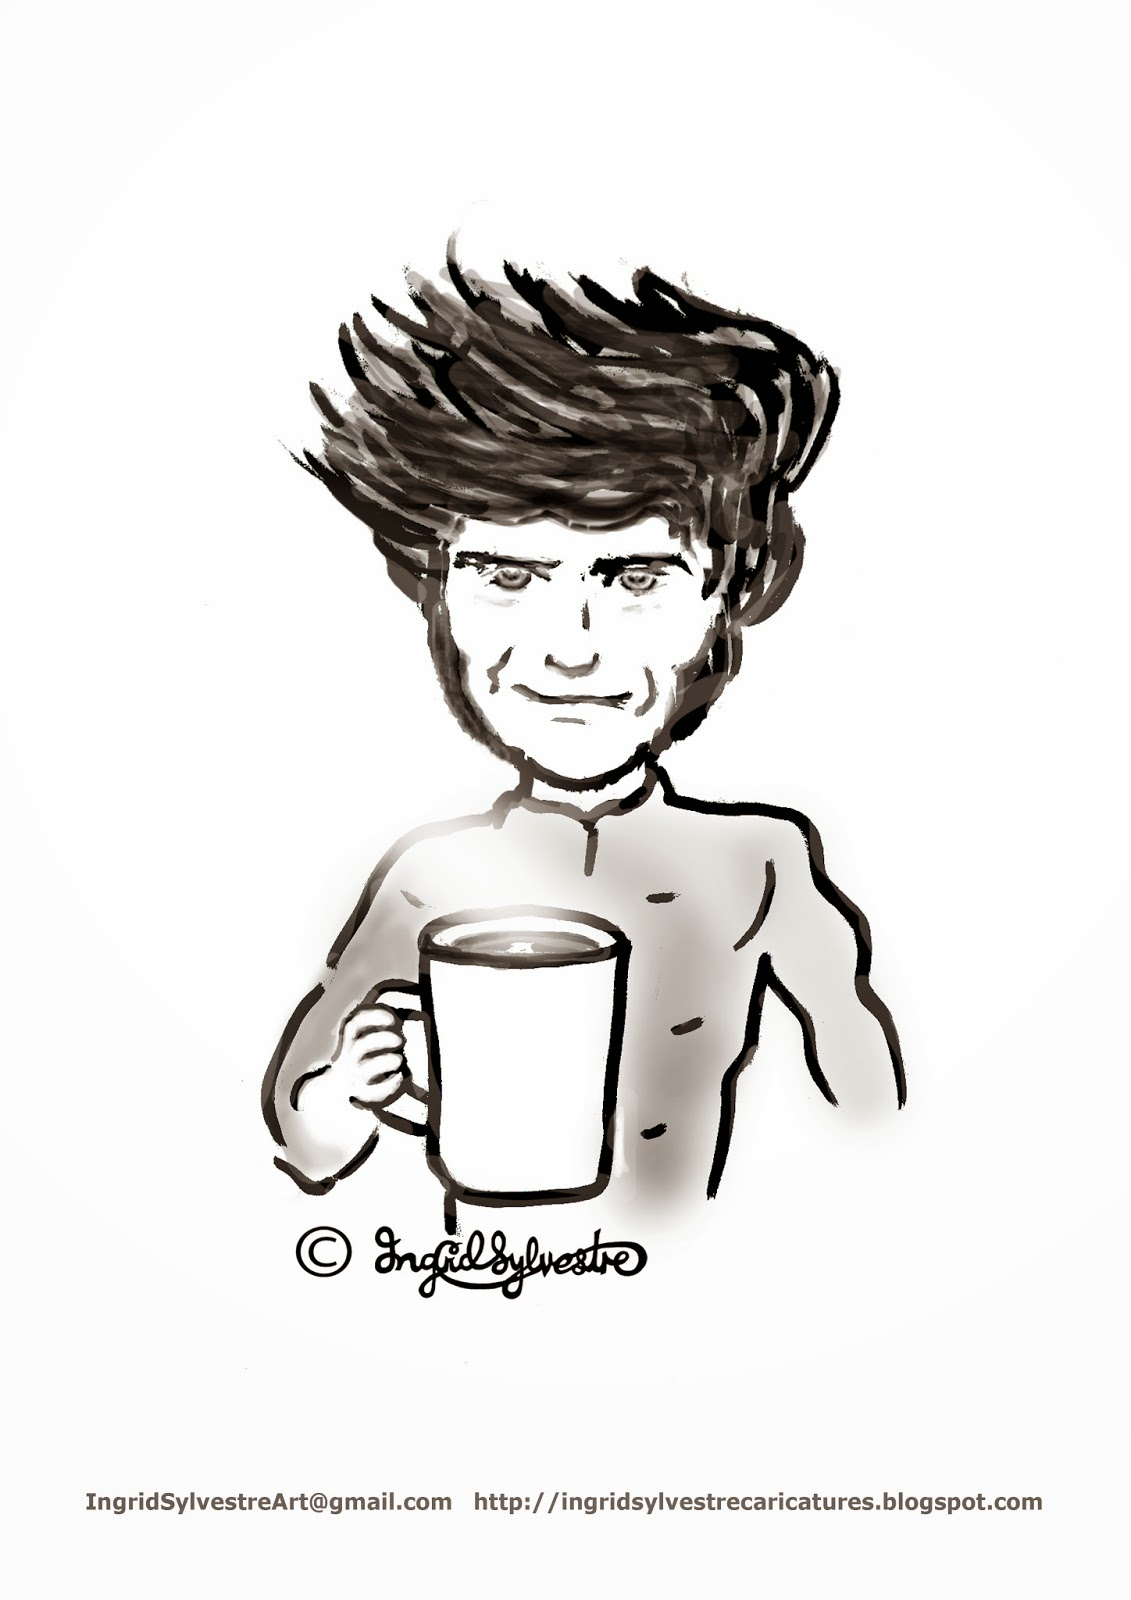 Guy Martin TT motorcycle racer with brew of tea - Ingrid Sylvestre caricature artist UK